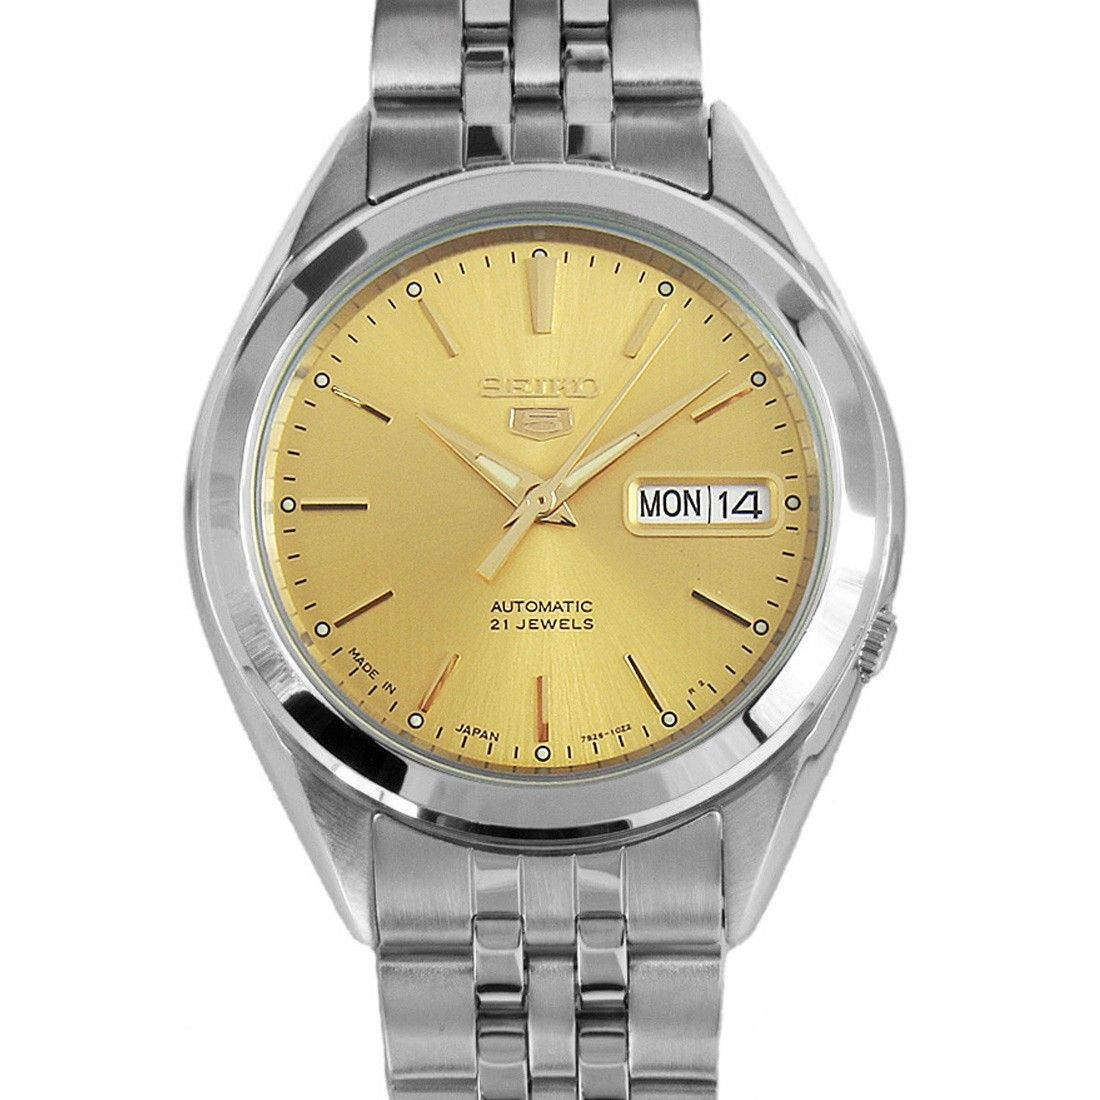 SNKL21J1 SNKL21 Seiko 5 Automatic Mens Watch Seiko 5